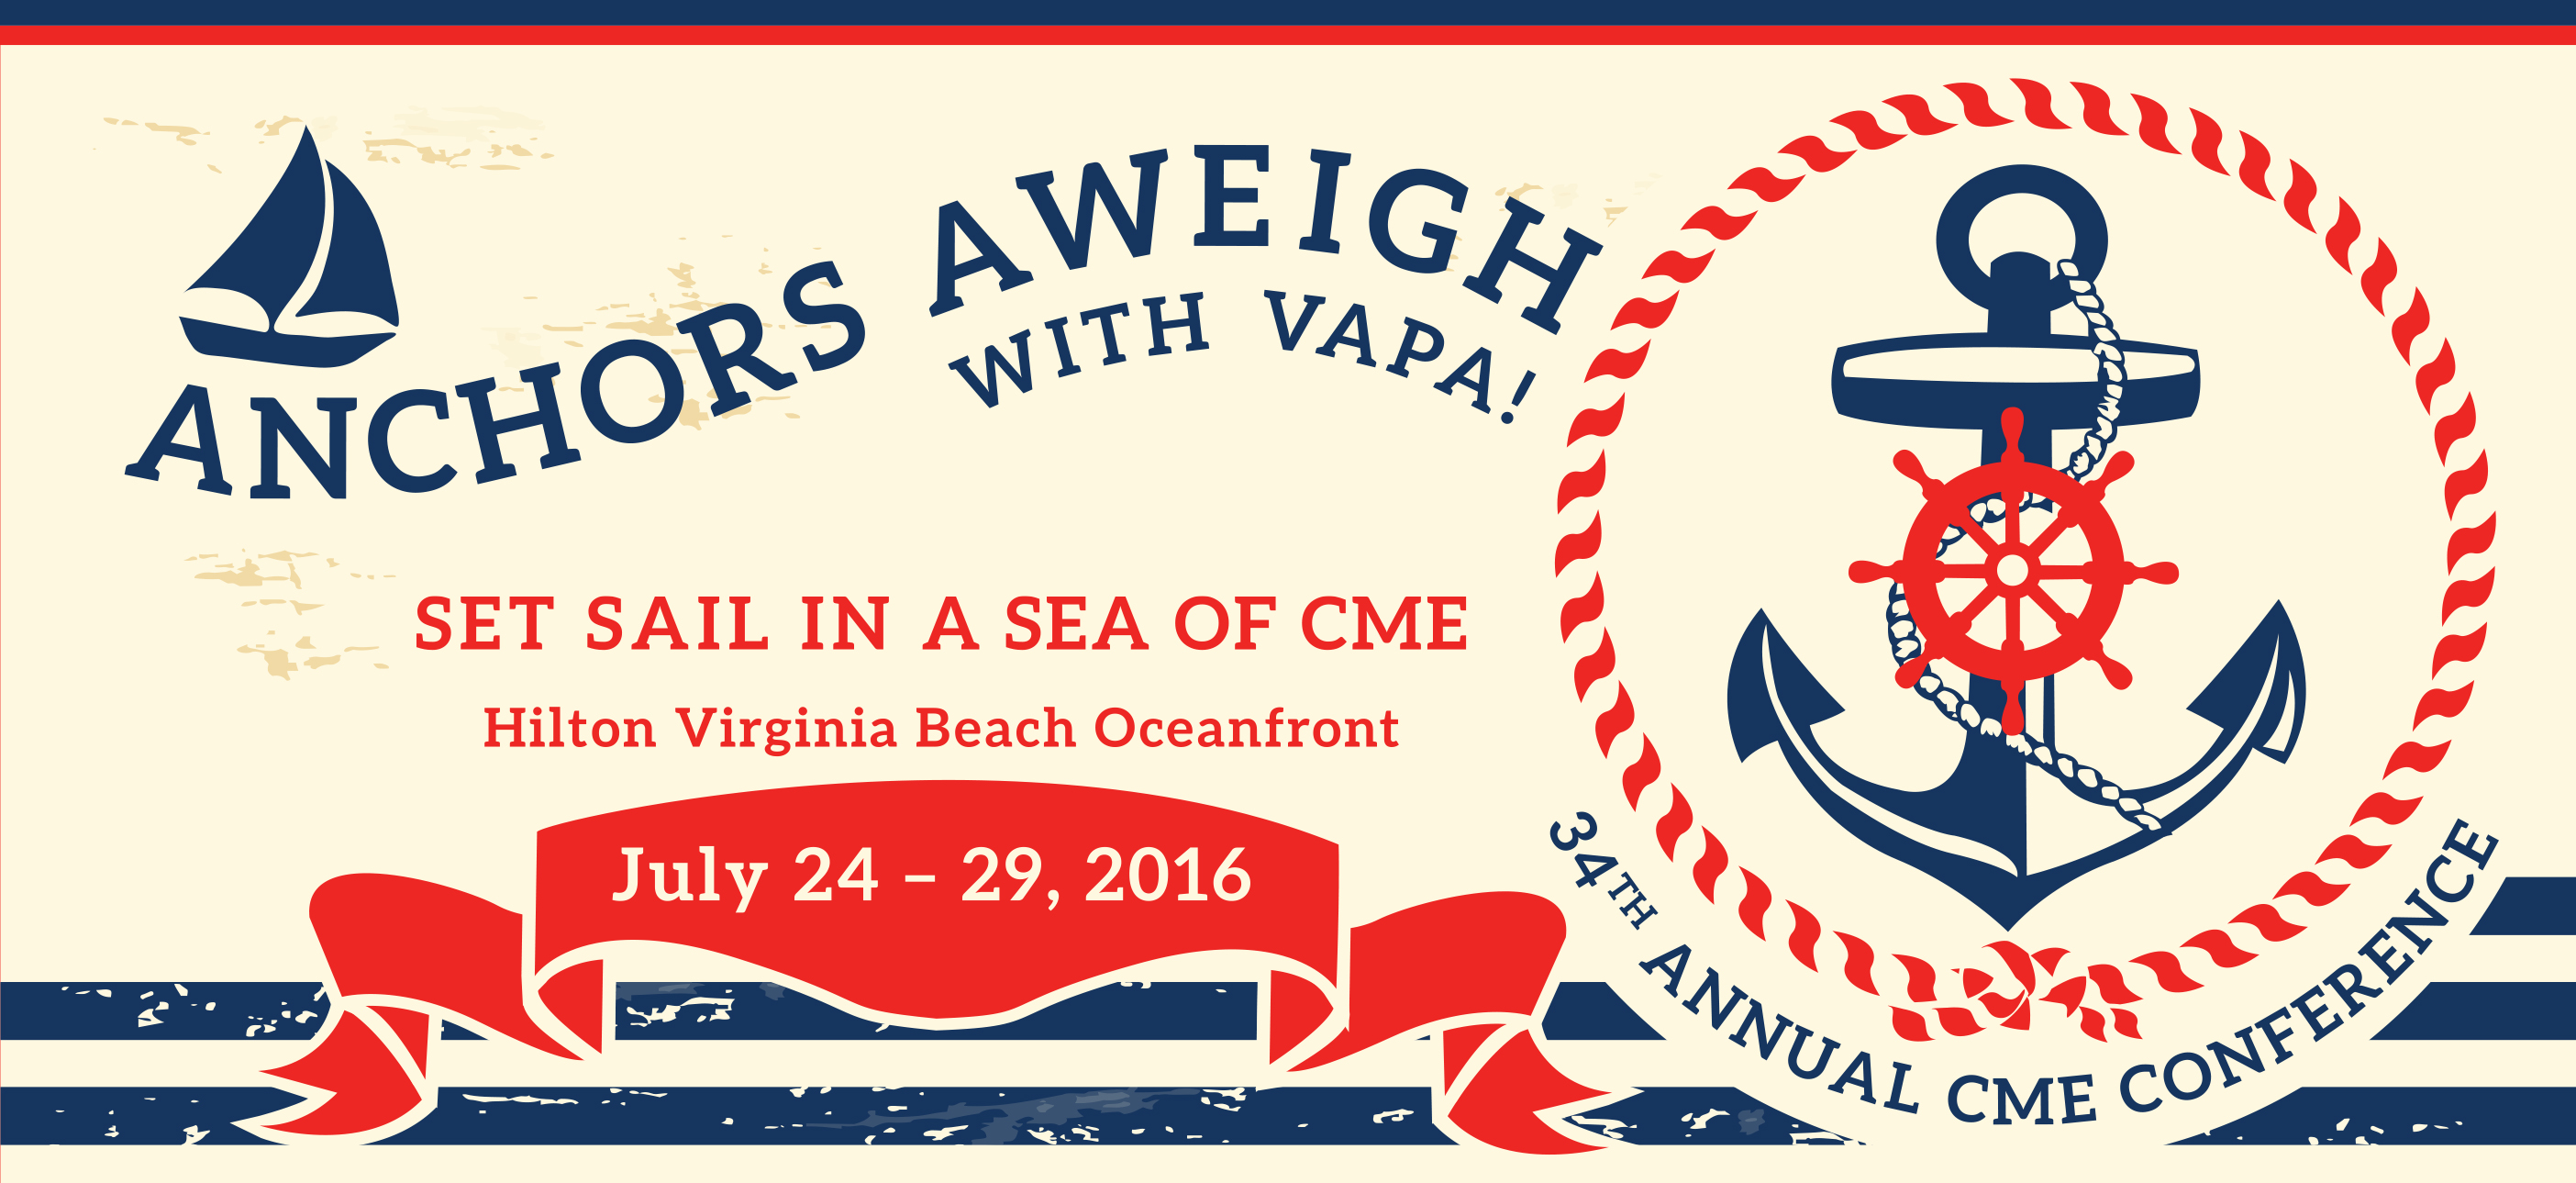 VAPA 2016 Summer CME Conference,